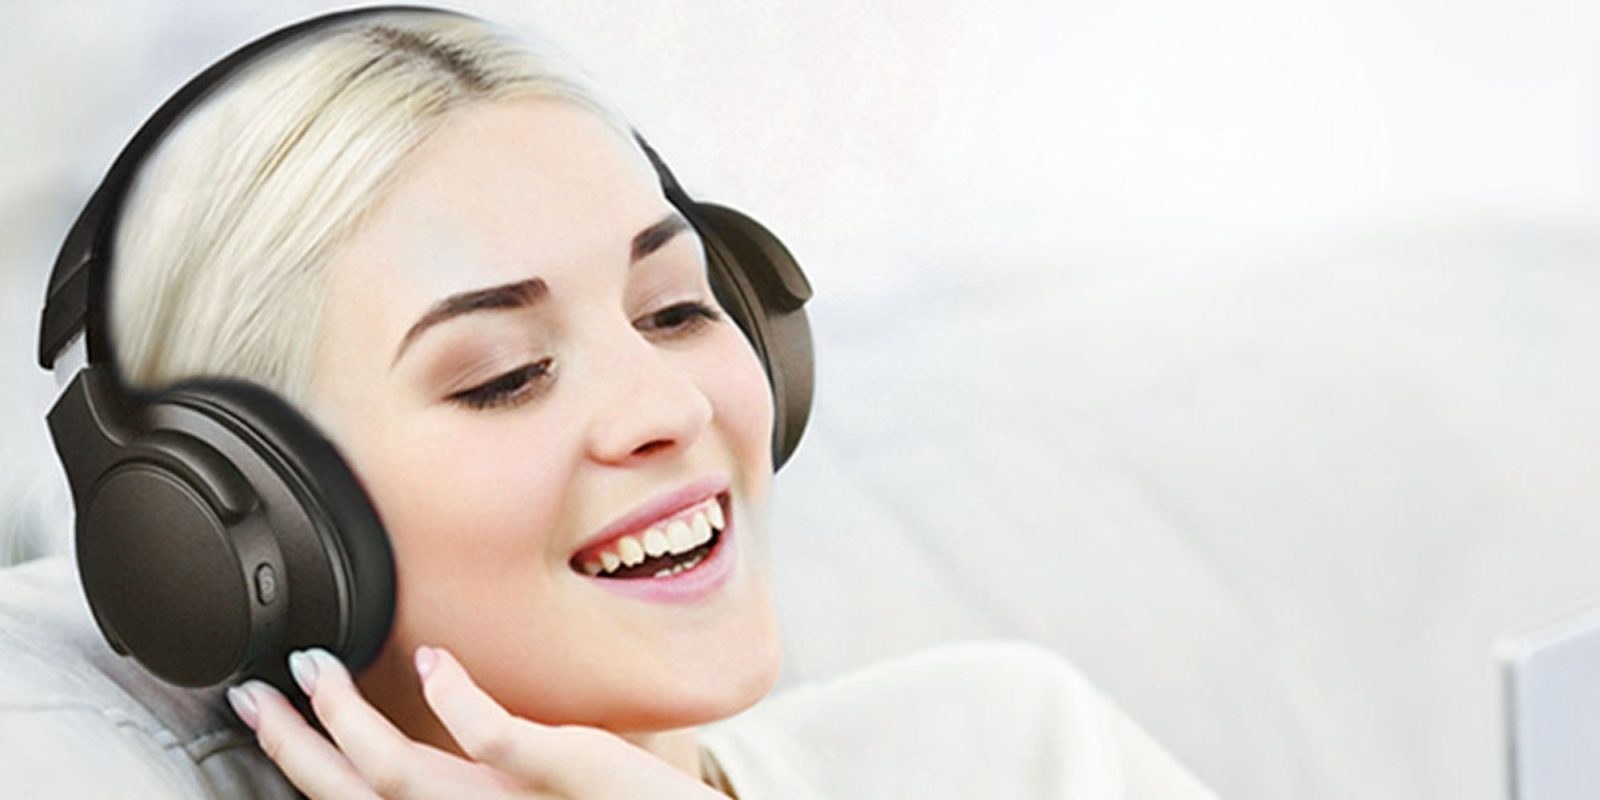 Enjoy wireless sound with these noise cancelling headphones, now $60